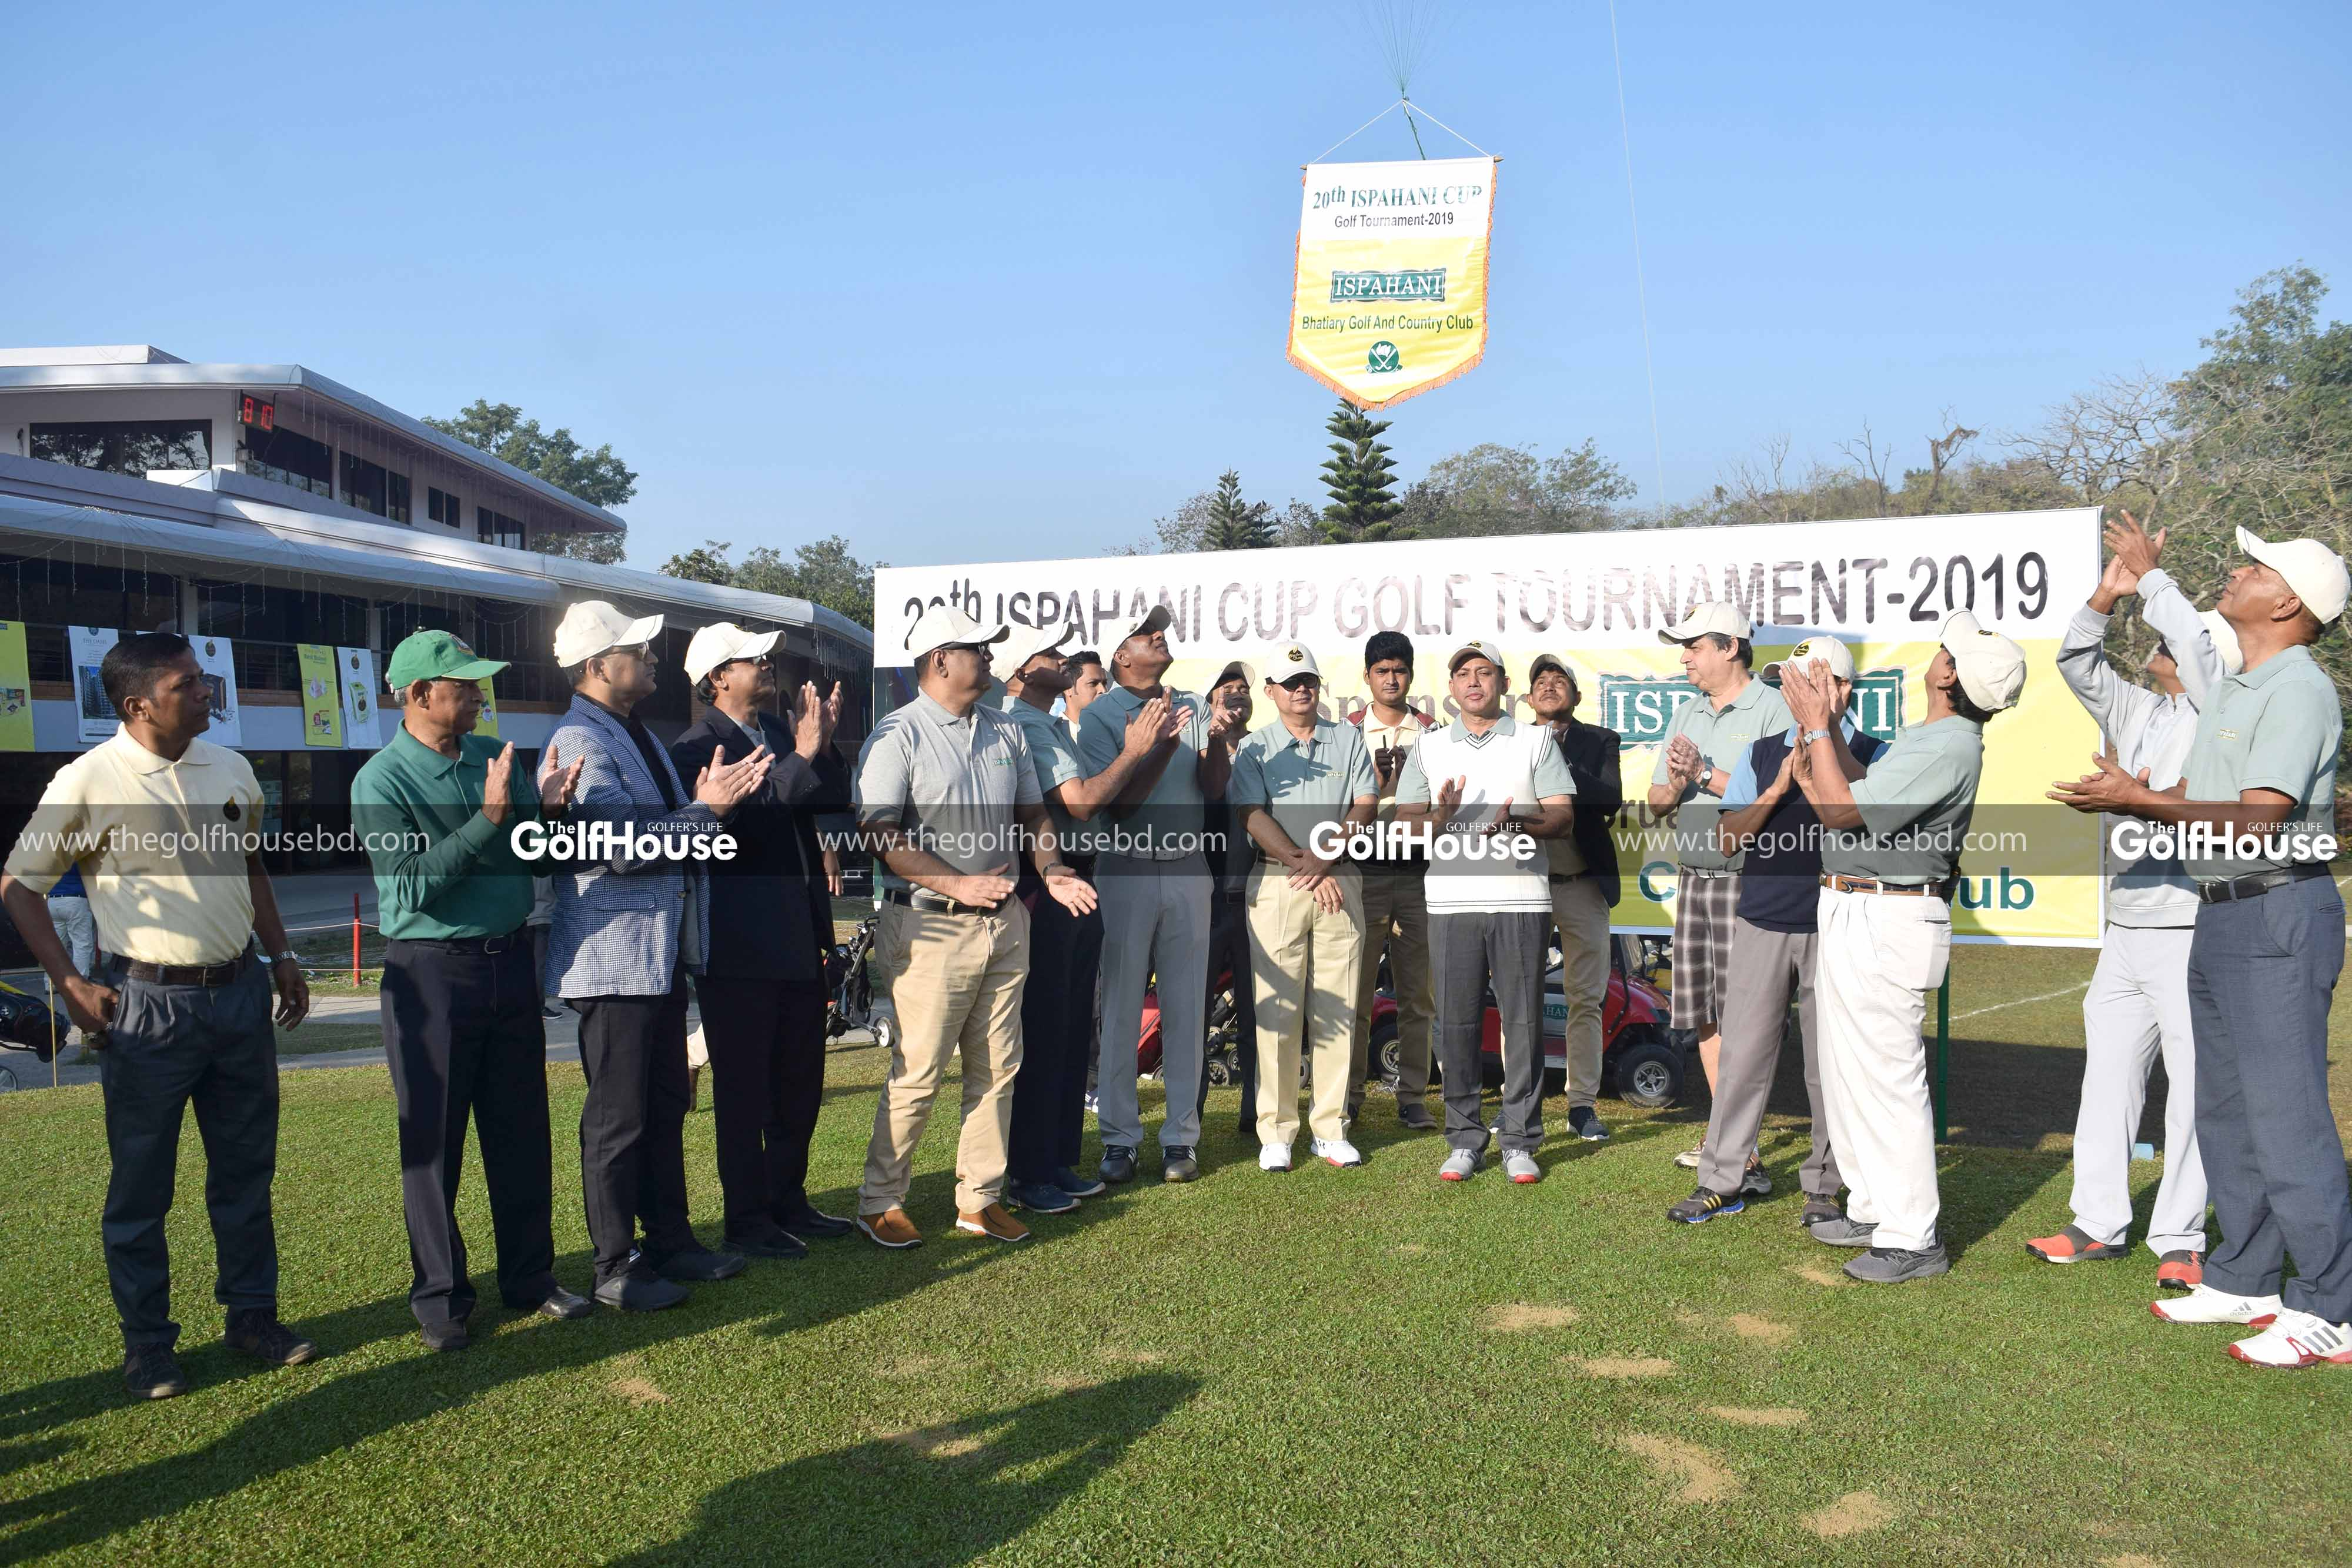 20TH ISPAHANI CUP GOLF TOURNAMENT HELD